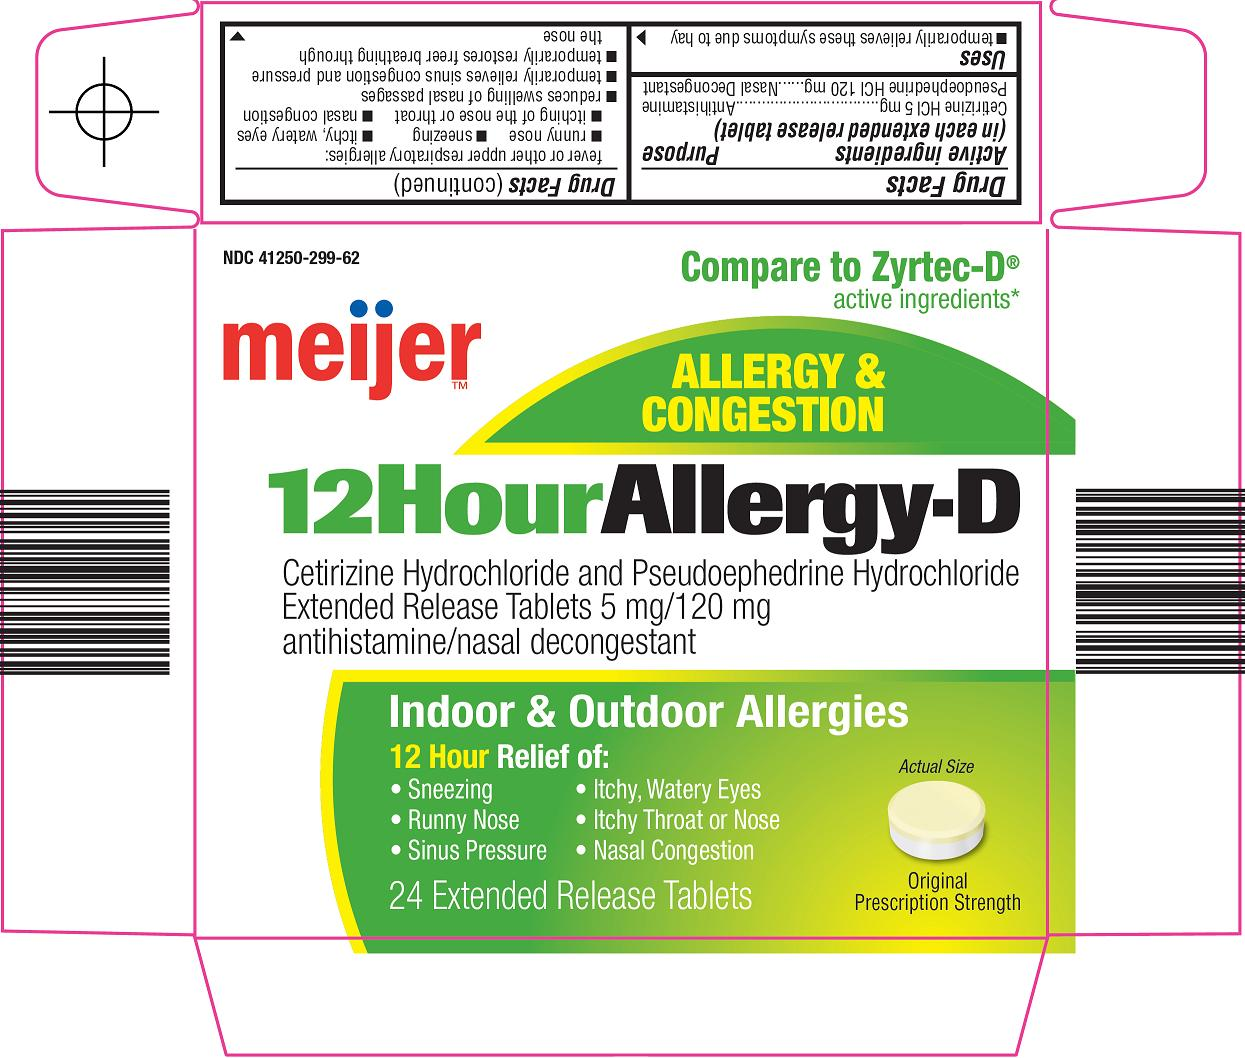 12 Hour Allergy D Carton Image 1